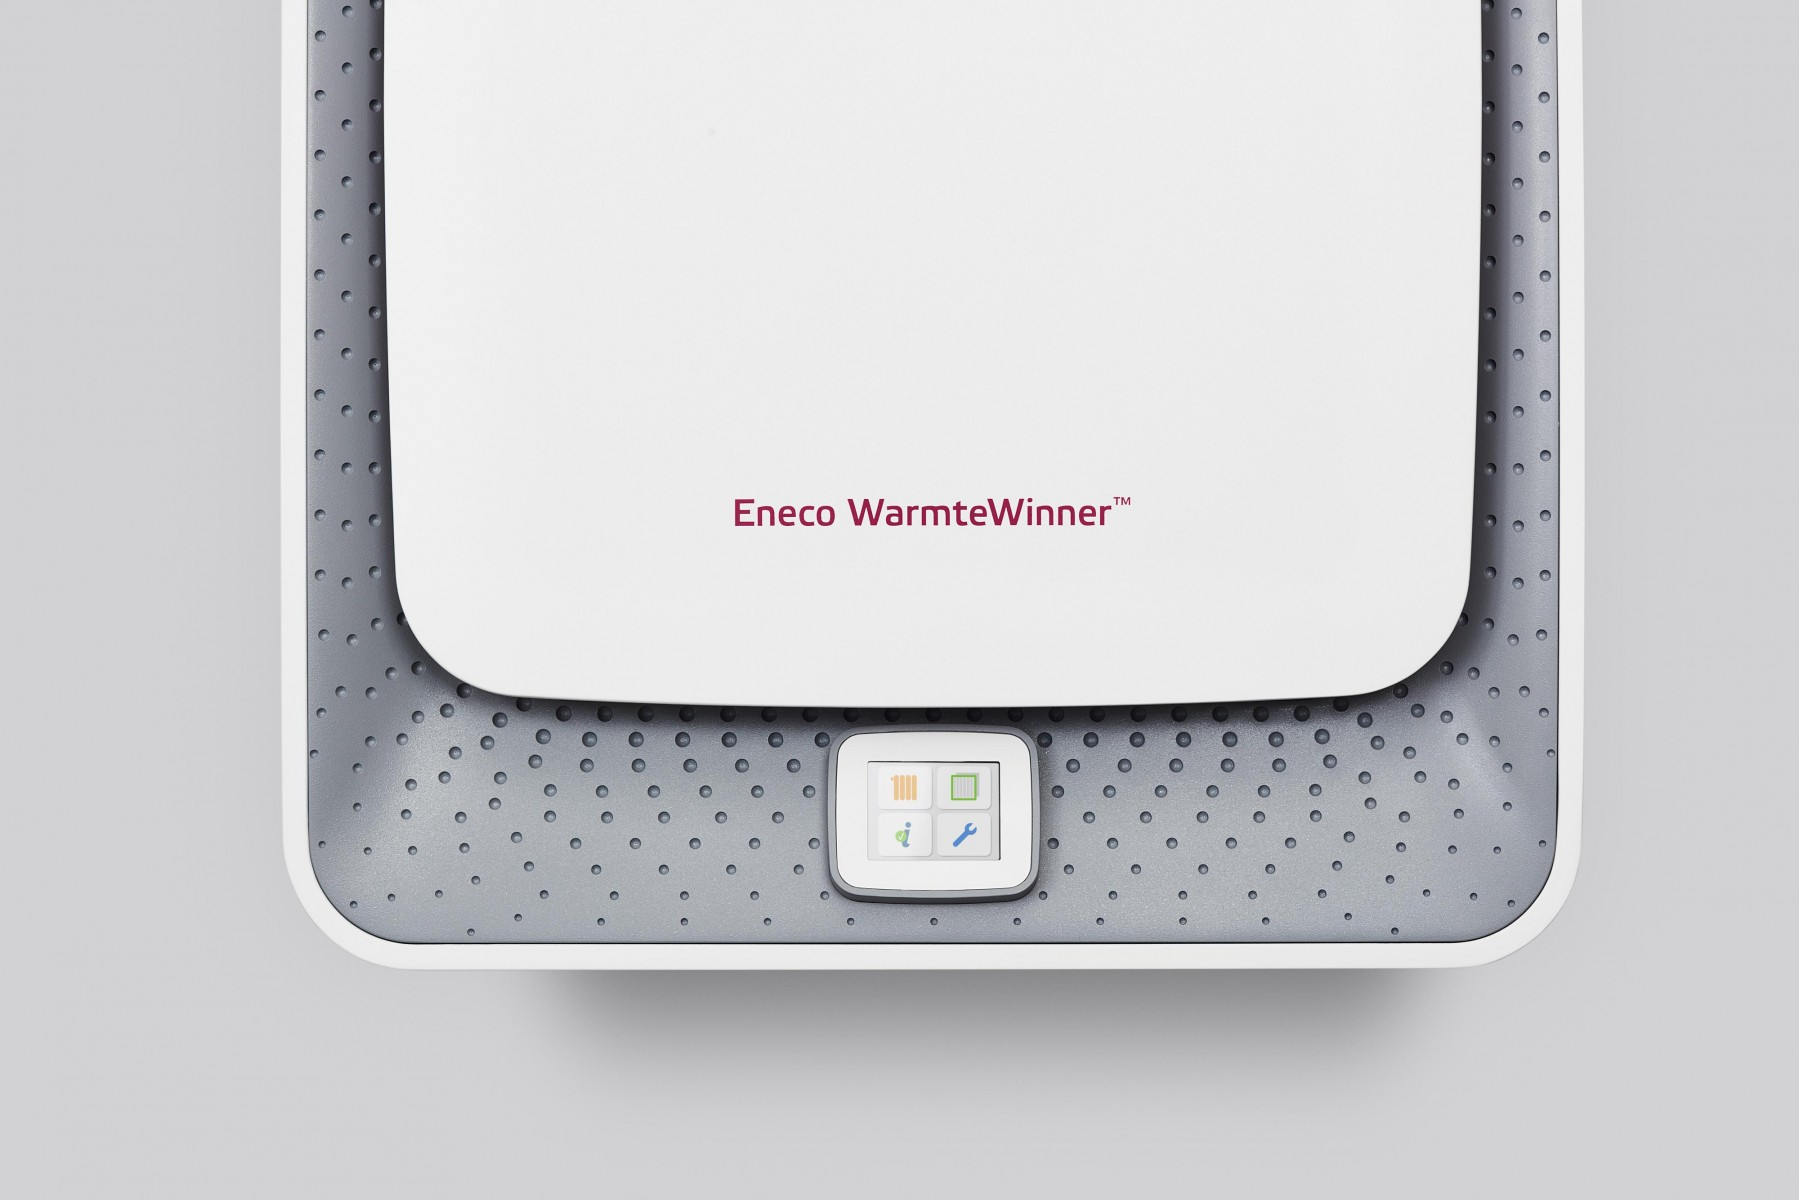 enecowarmtewinner-close-menu-hr-5.jpg